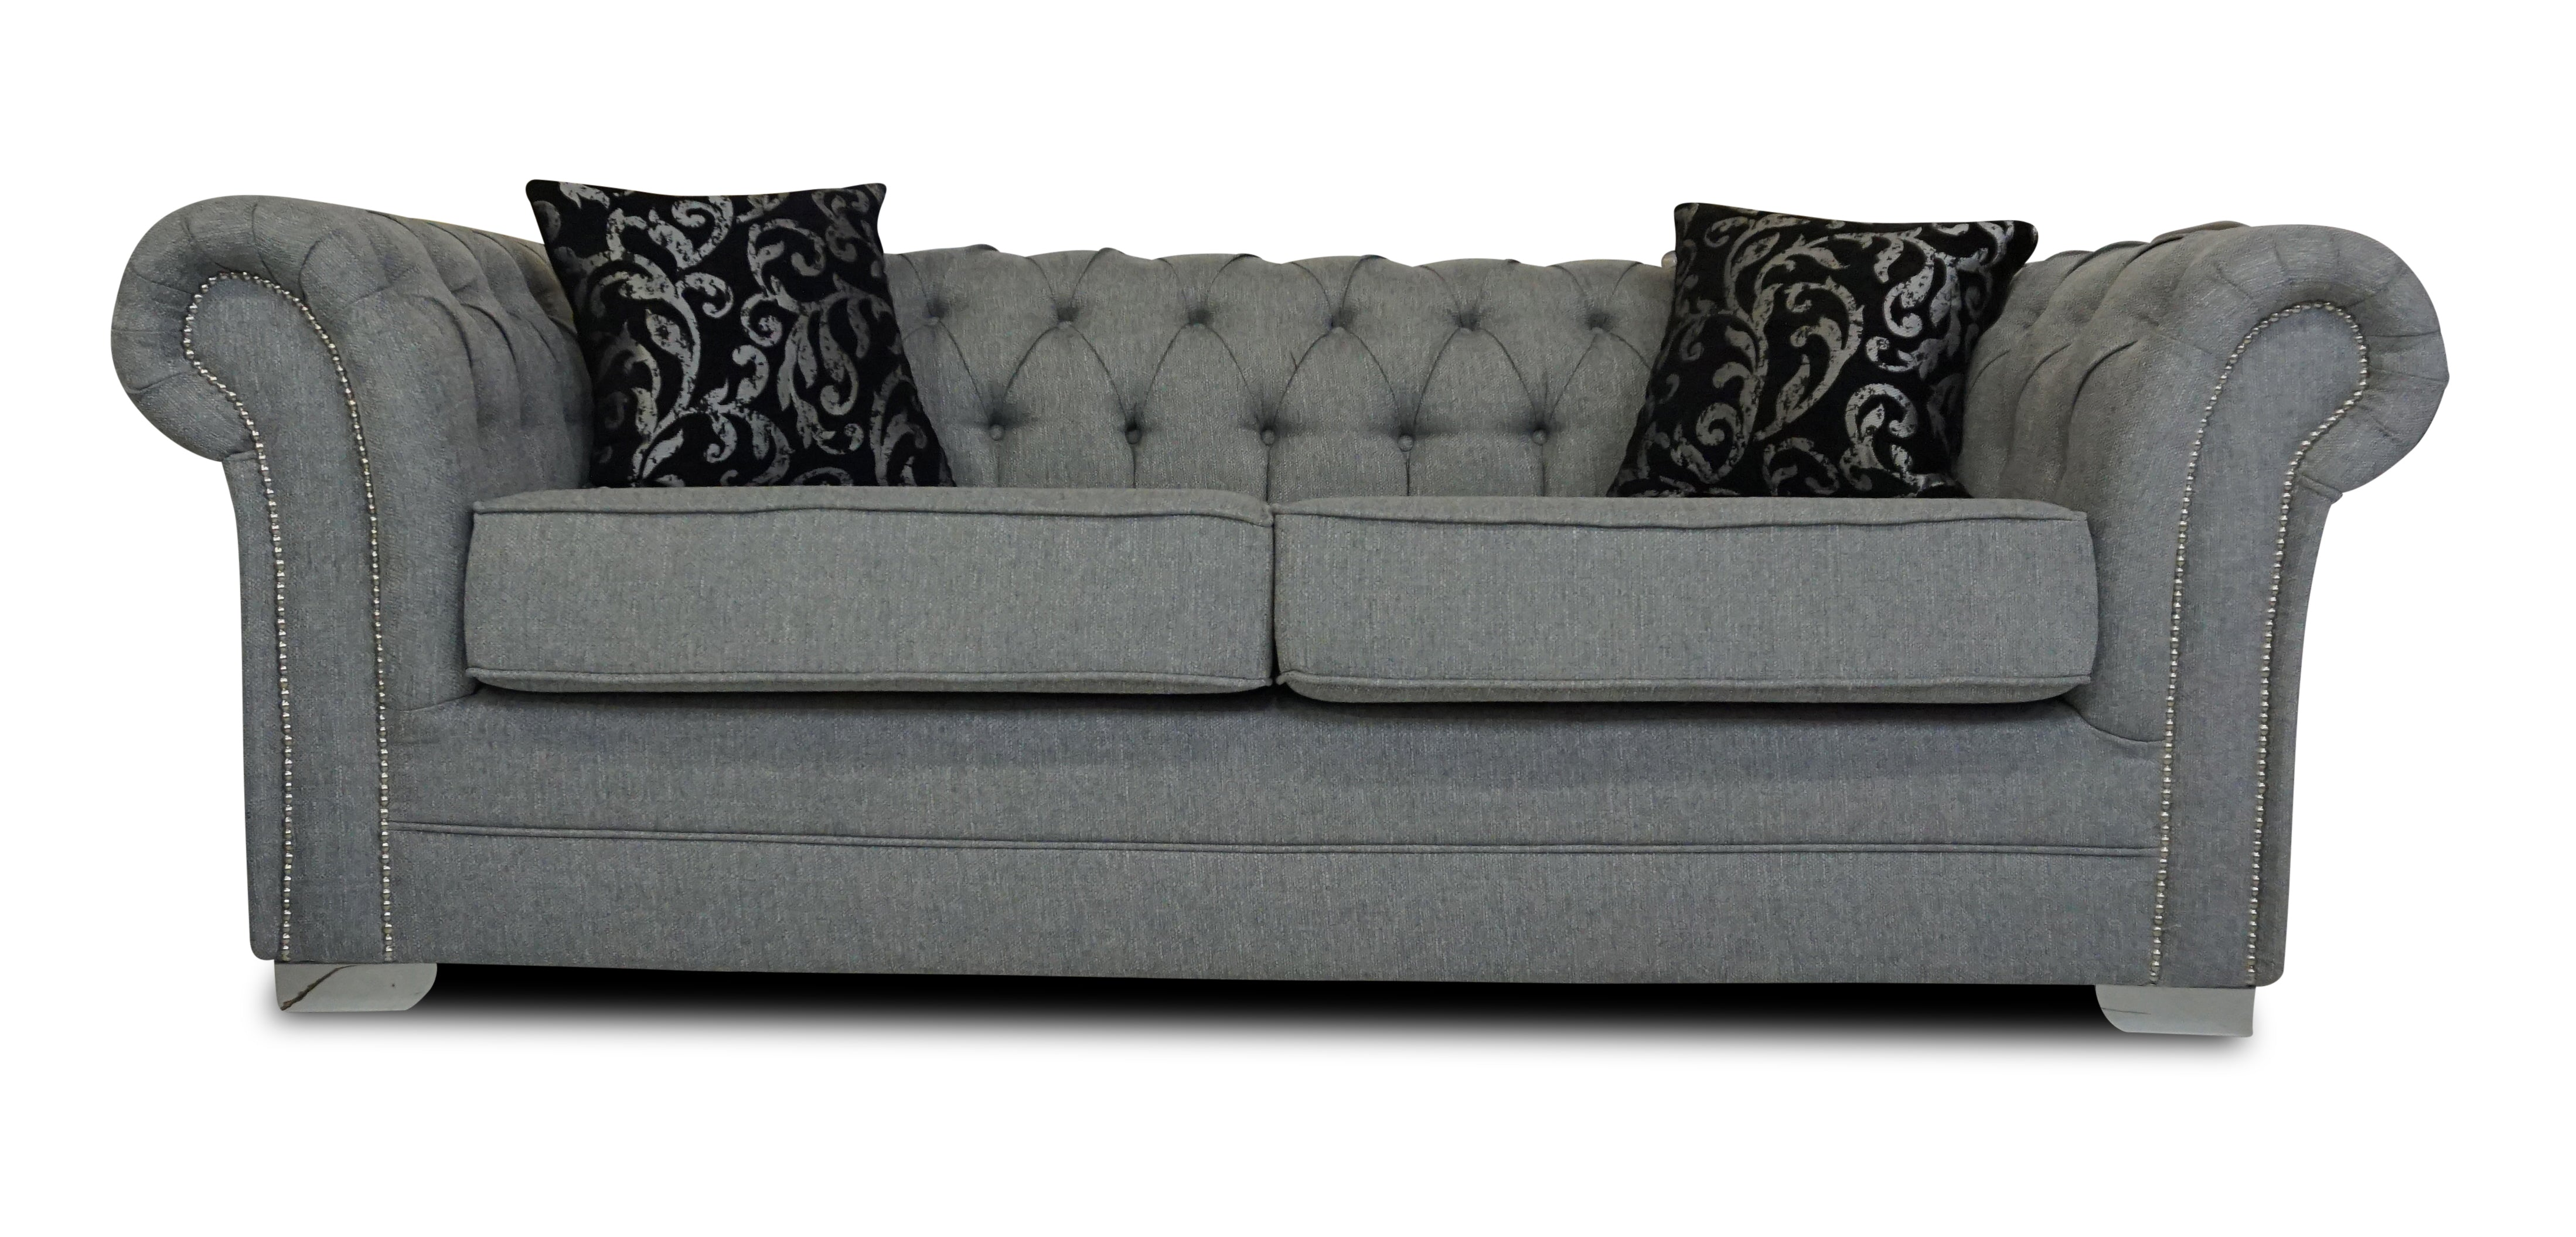 Fabric Sofas Near Kimberworth